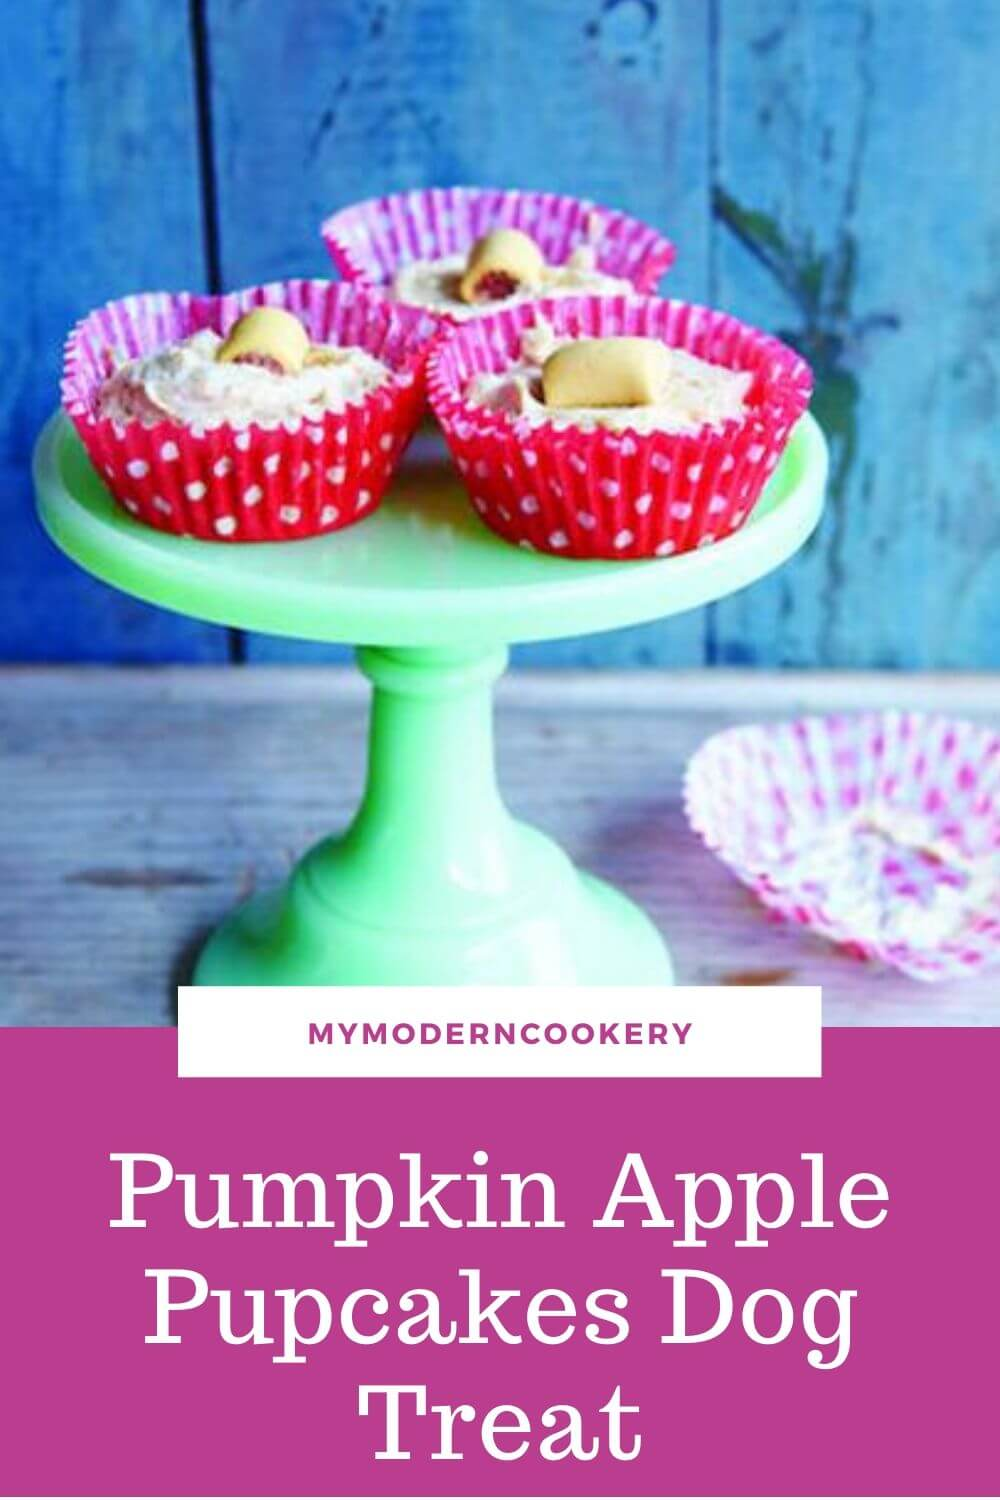 Pumpkin Apple Pup-cakes dog treat